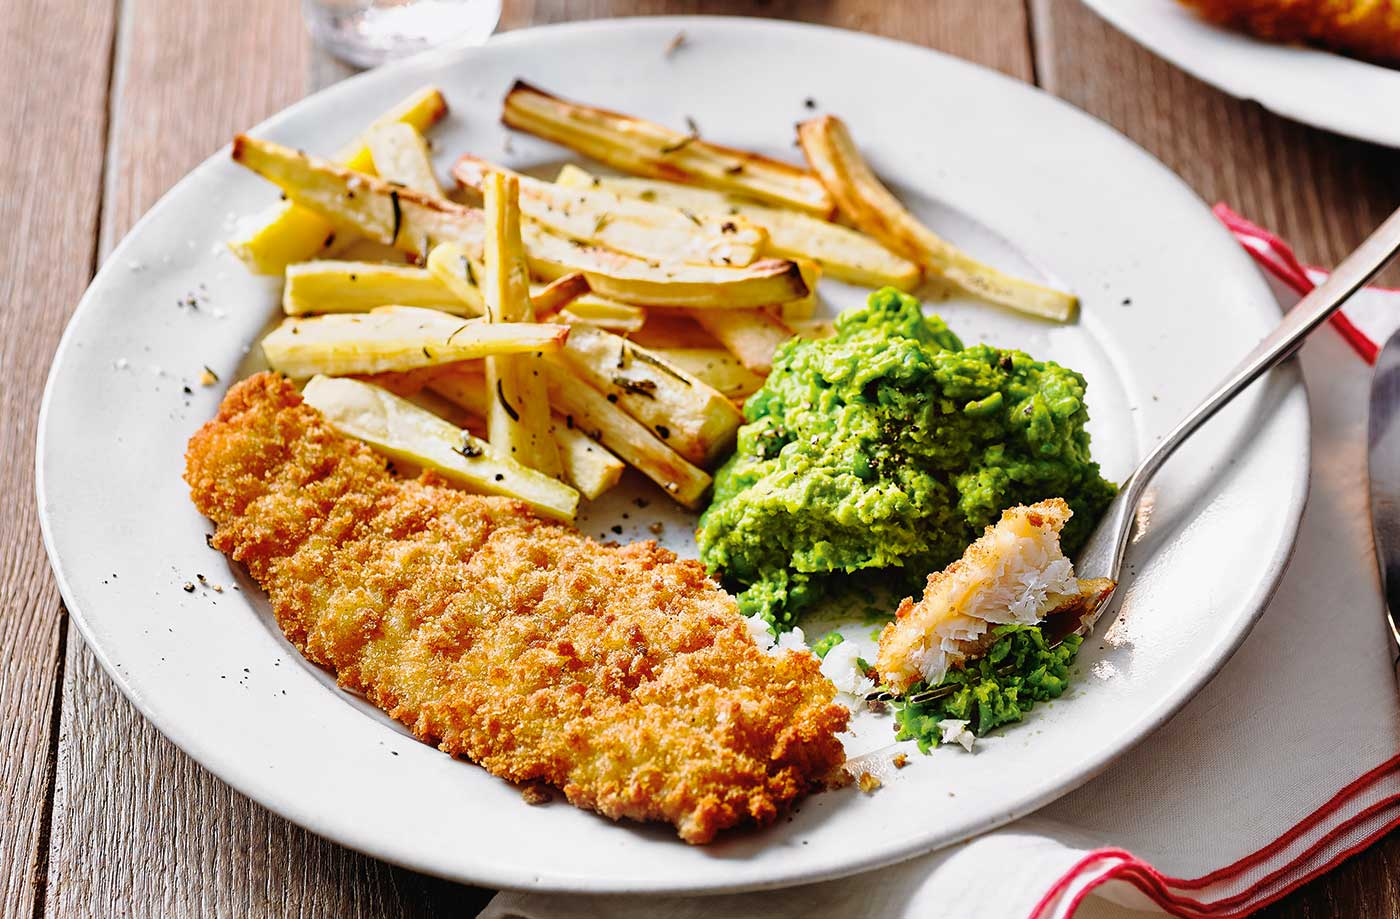 Fish with parsnip chips and cheat's mushy peas recipe